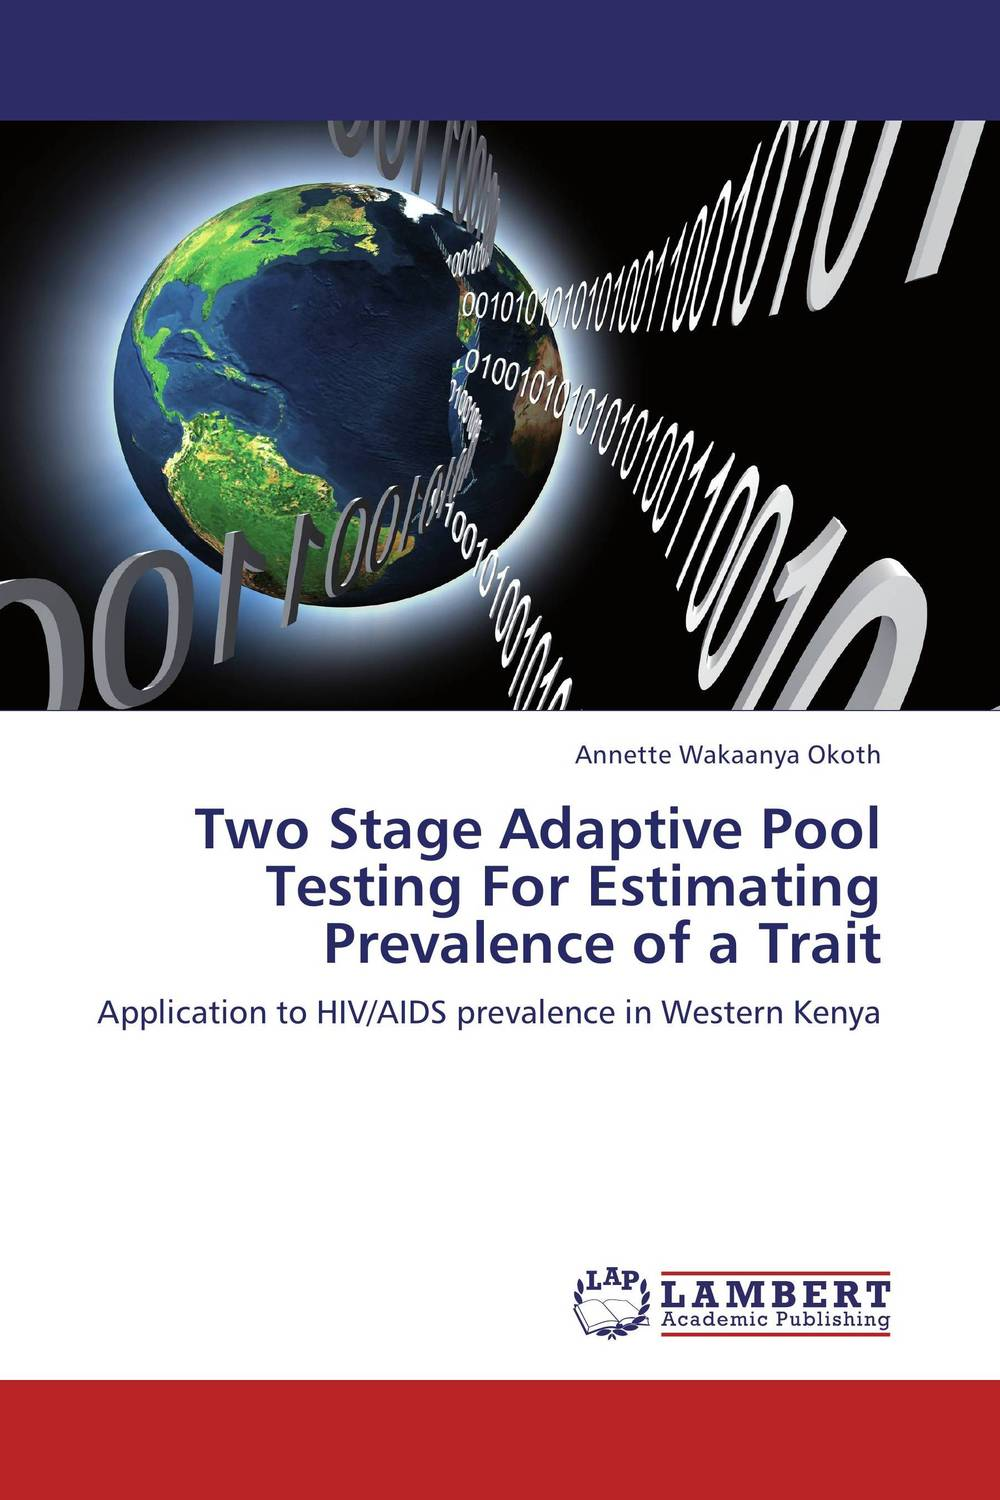 Two Stage Adaptive Pool Testing For Estimating Prevalence of a Trait optimal adaptive visual servoing of robot manipulators